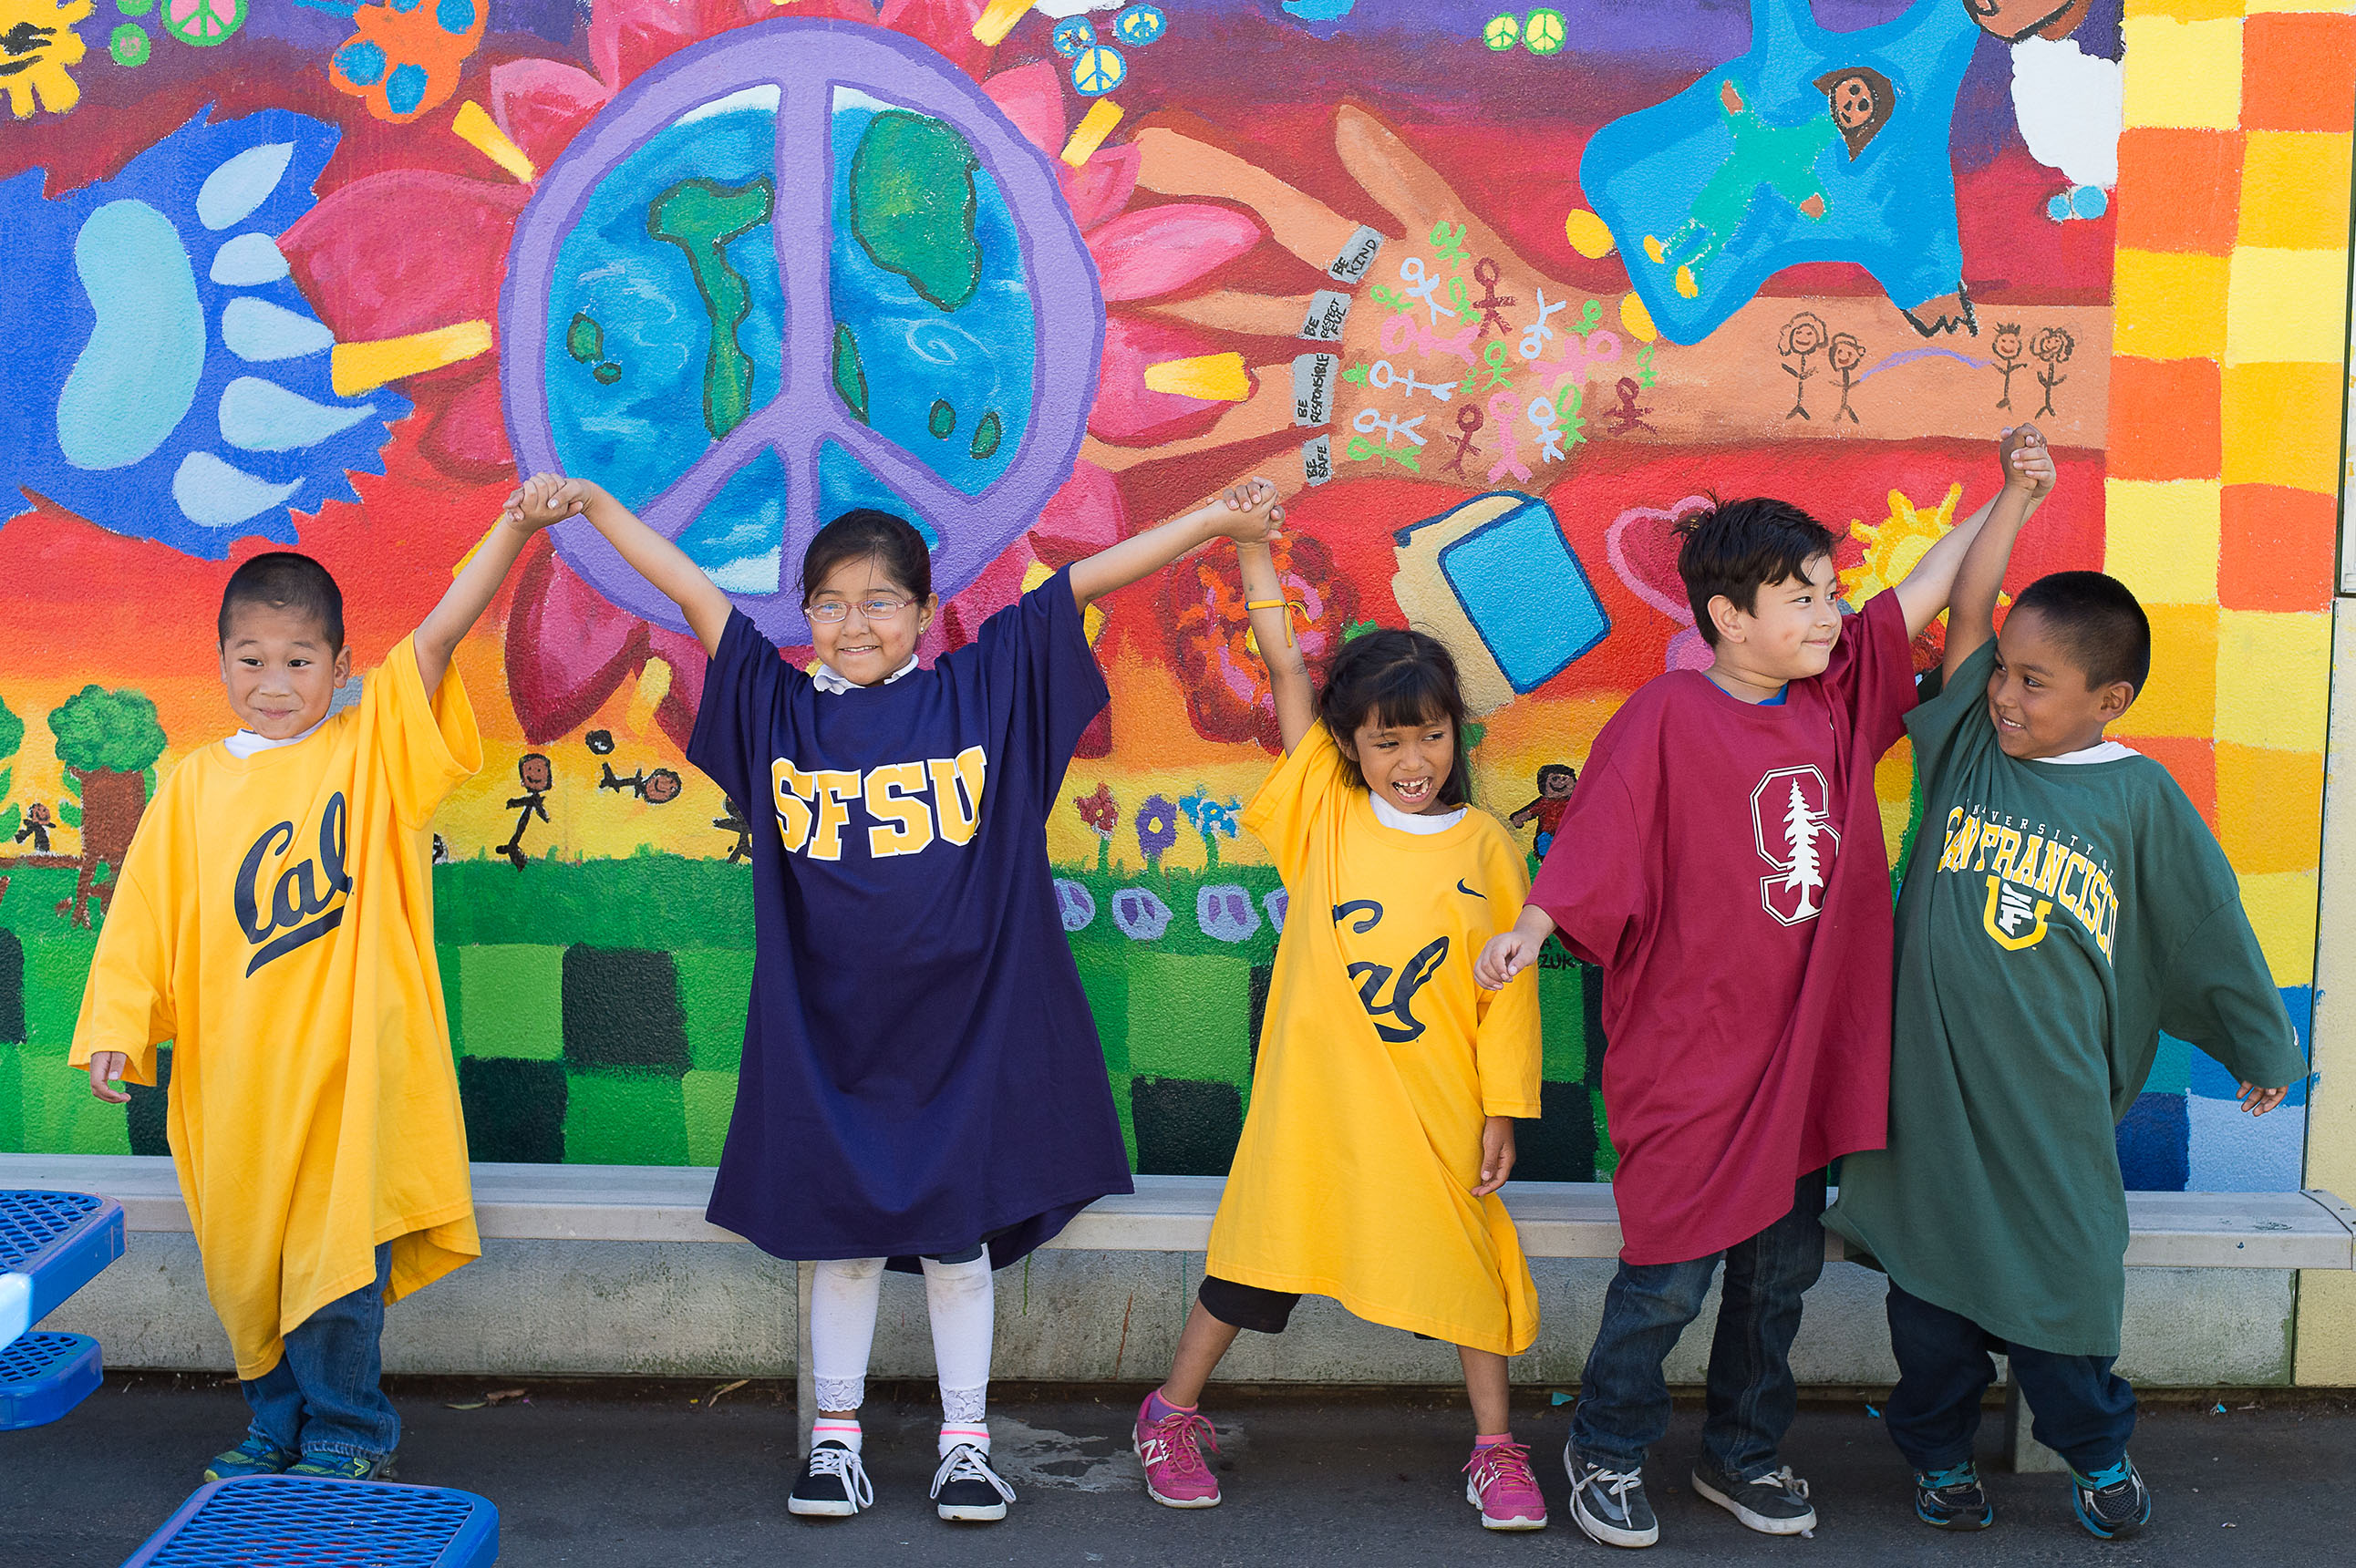 Small children wearing large college t-shirts